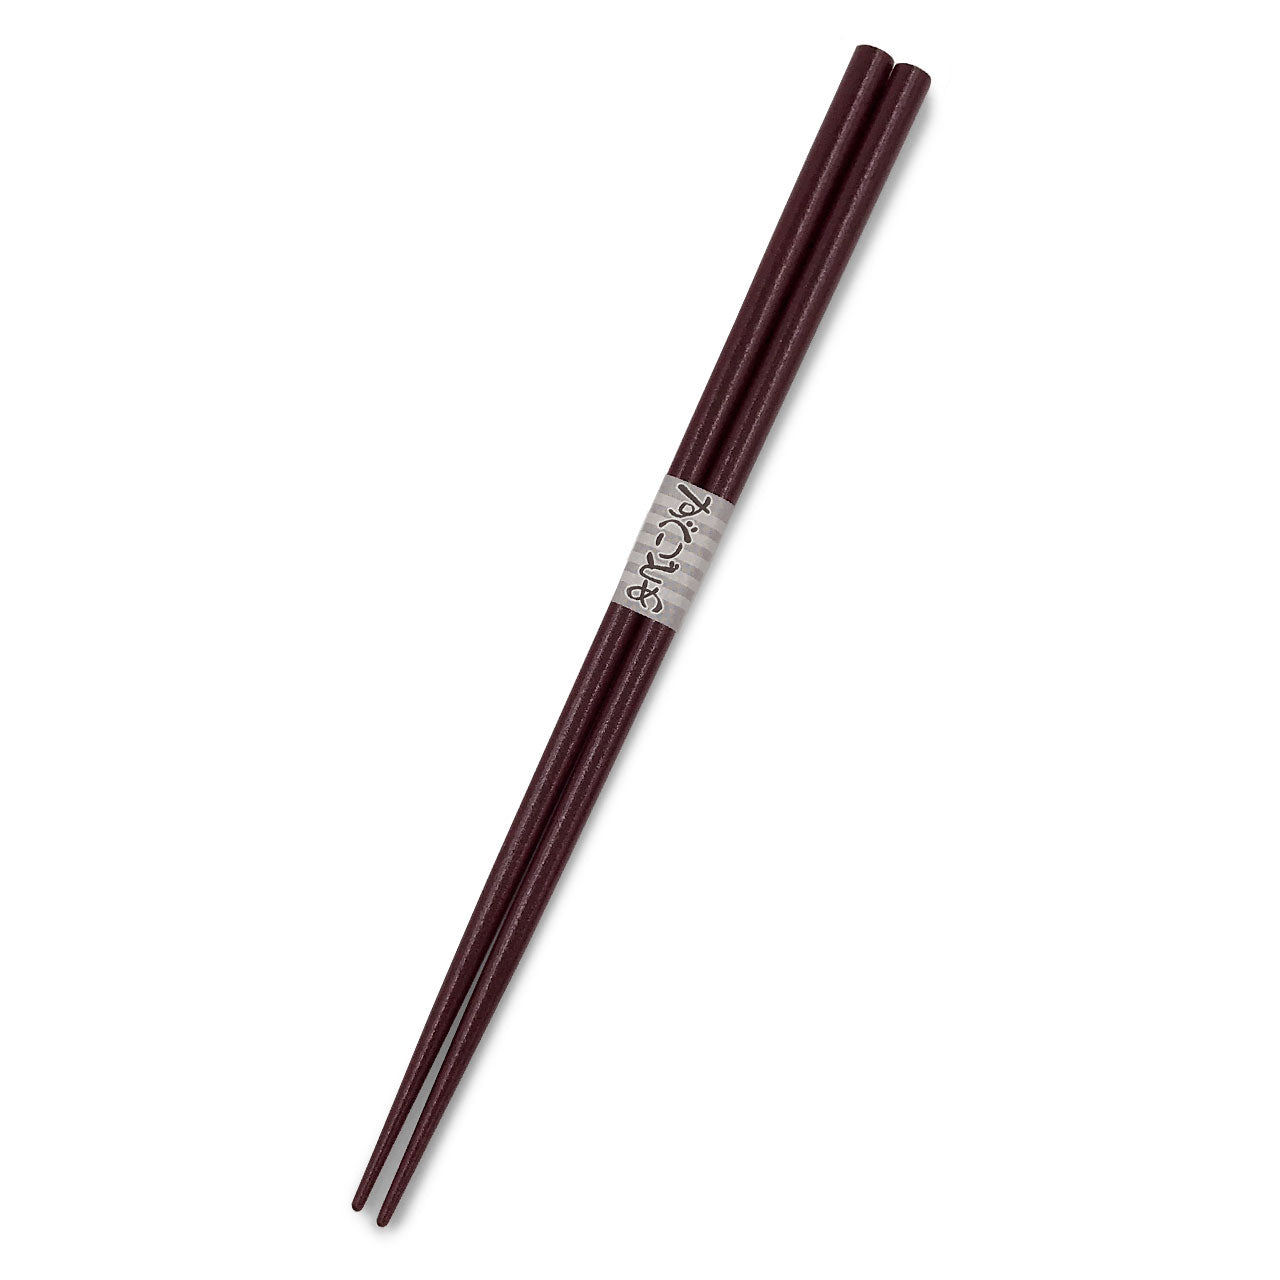 Burgundy Lacquered Non-slip Chopsticks